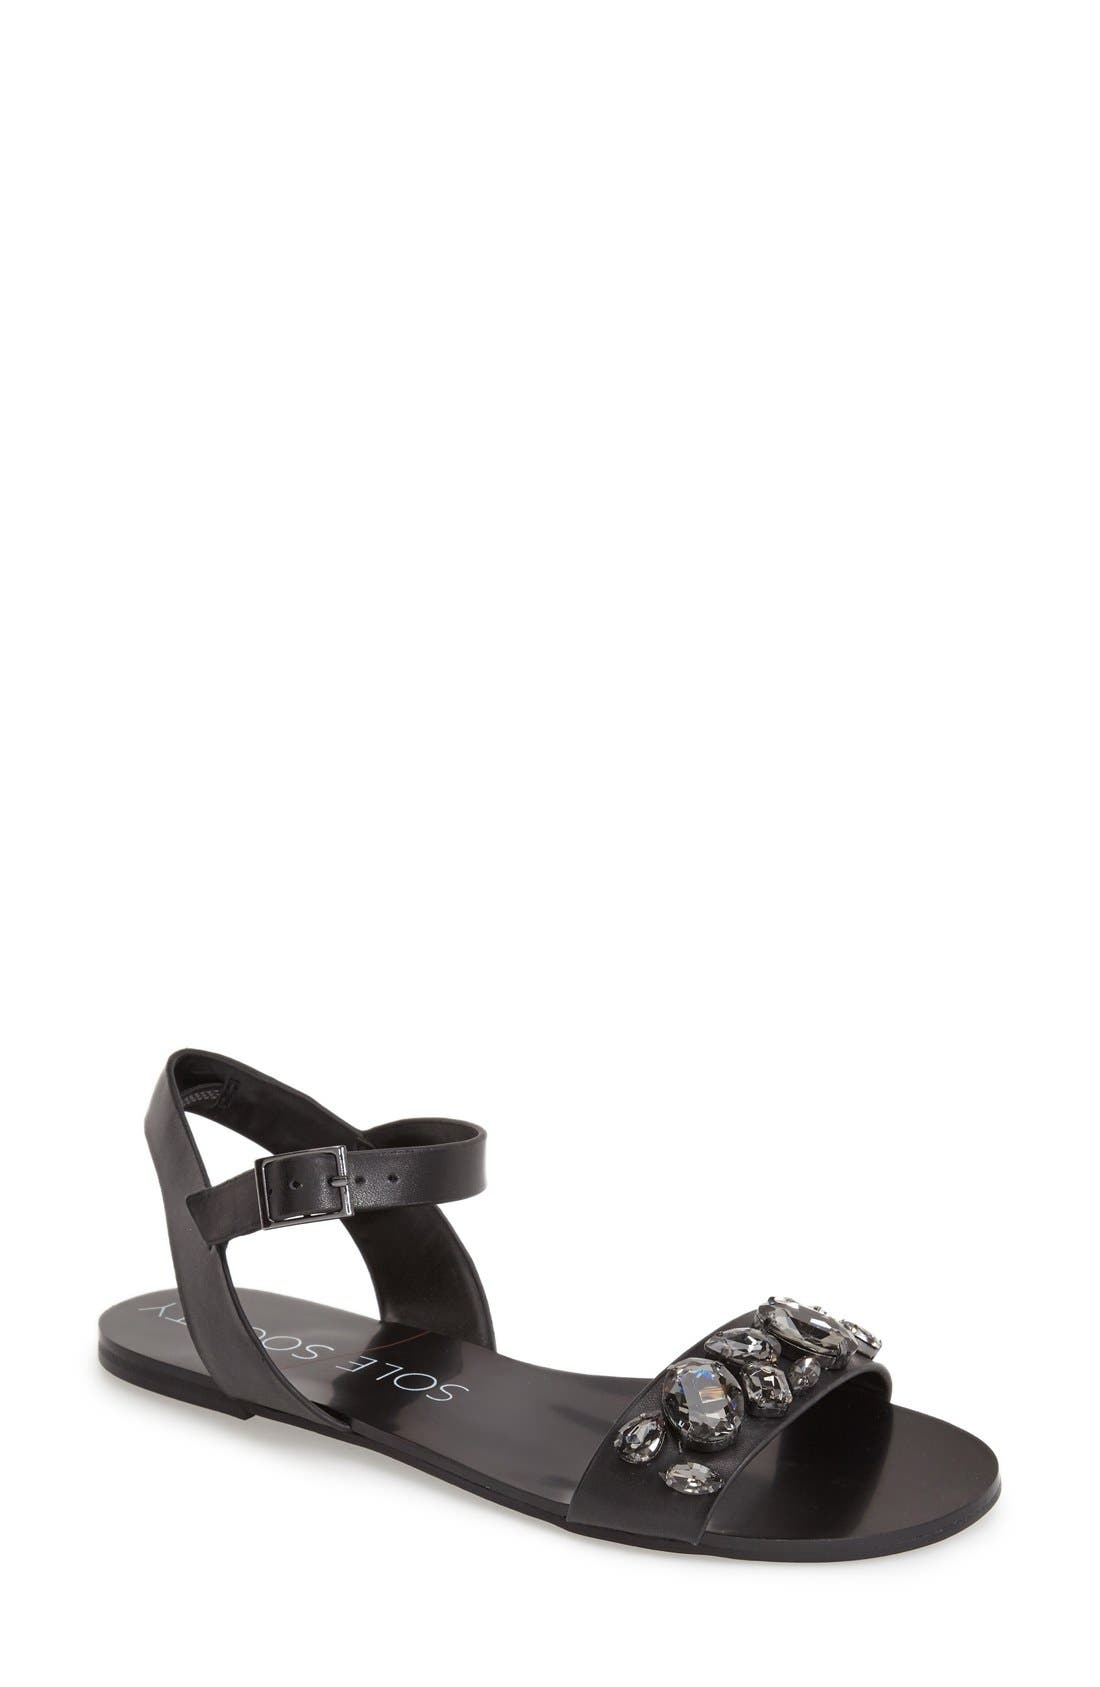 SOLE SOCIETY 'Gemma' Crystal Ankle Strap Sandal, Main, color, 001